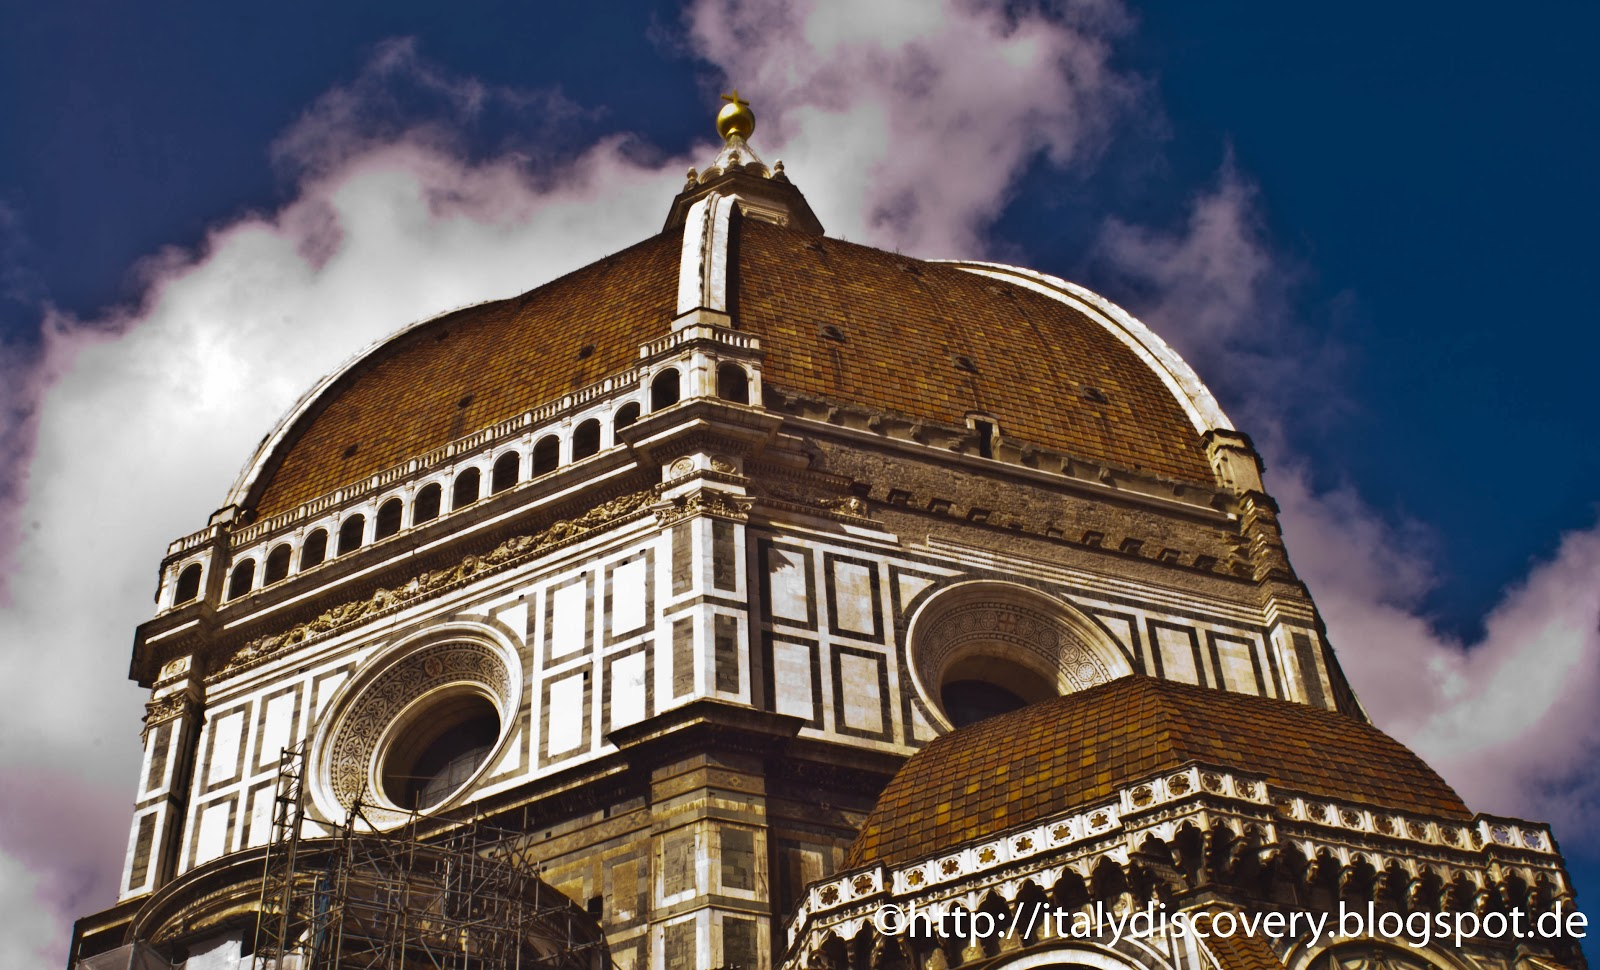 Our Italy Discovery Brunelleschi S Dome